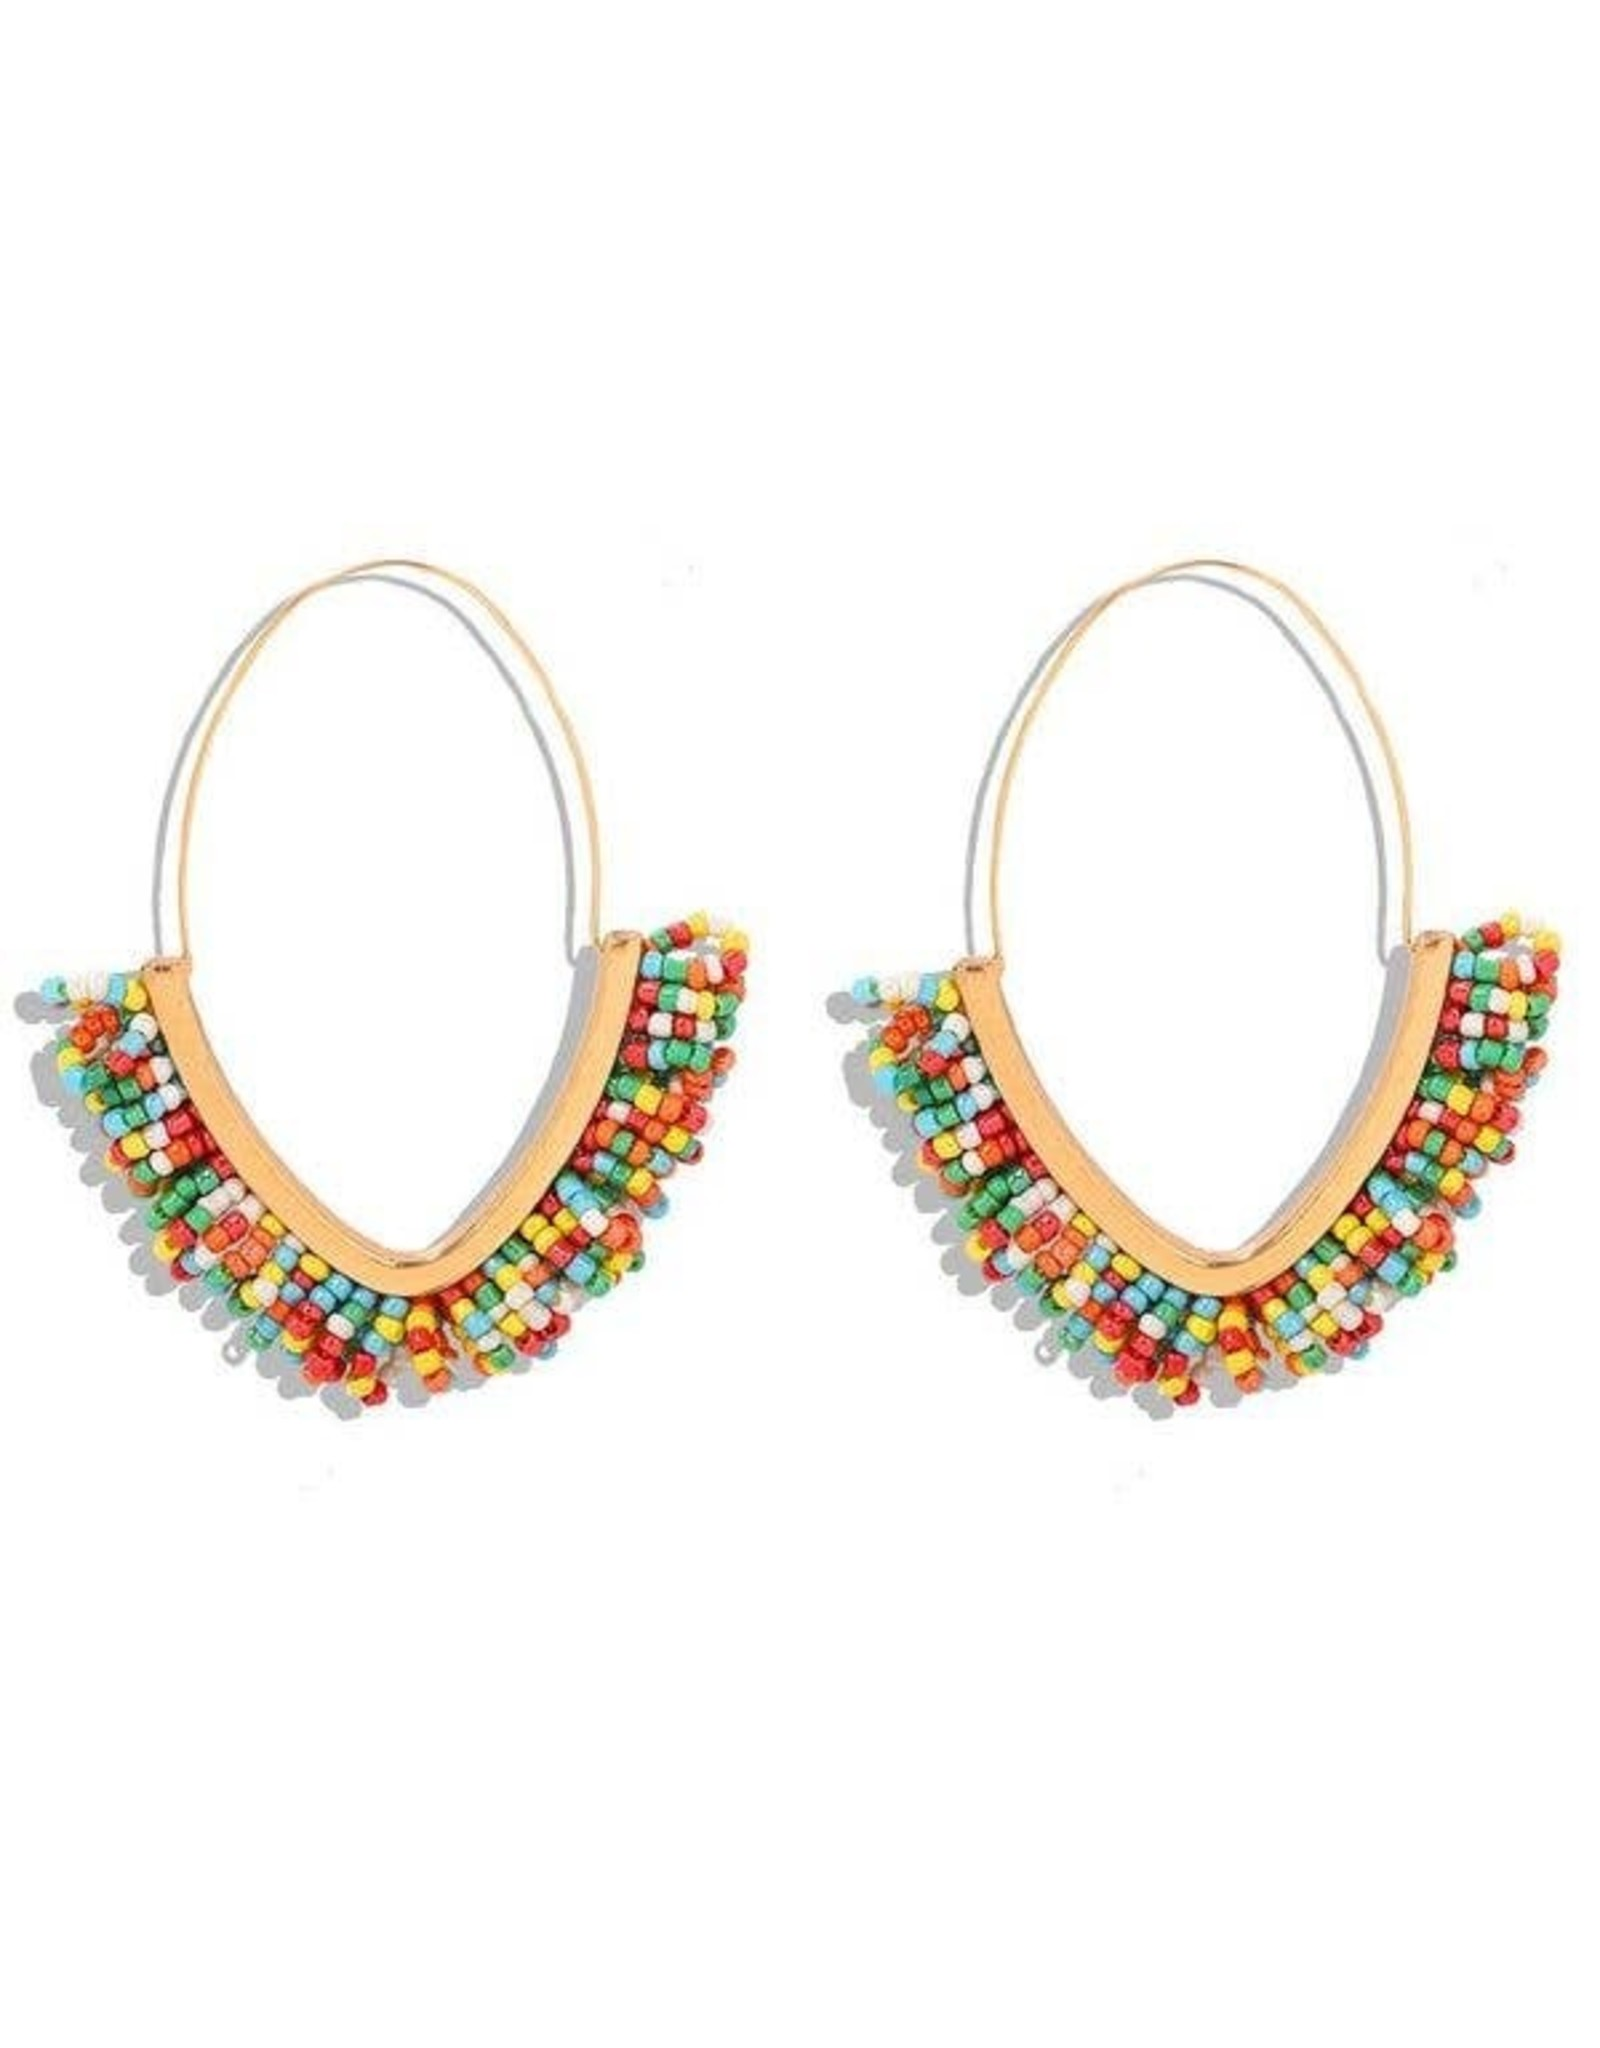 KOKO & LOLA RAINBOW & GOLD BOHO BEADED HOOP EARRING